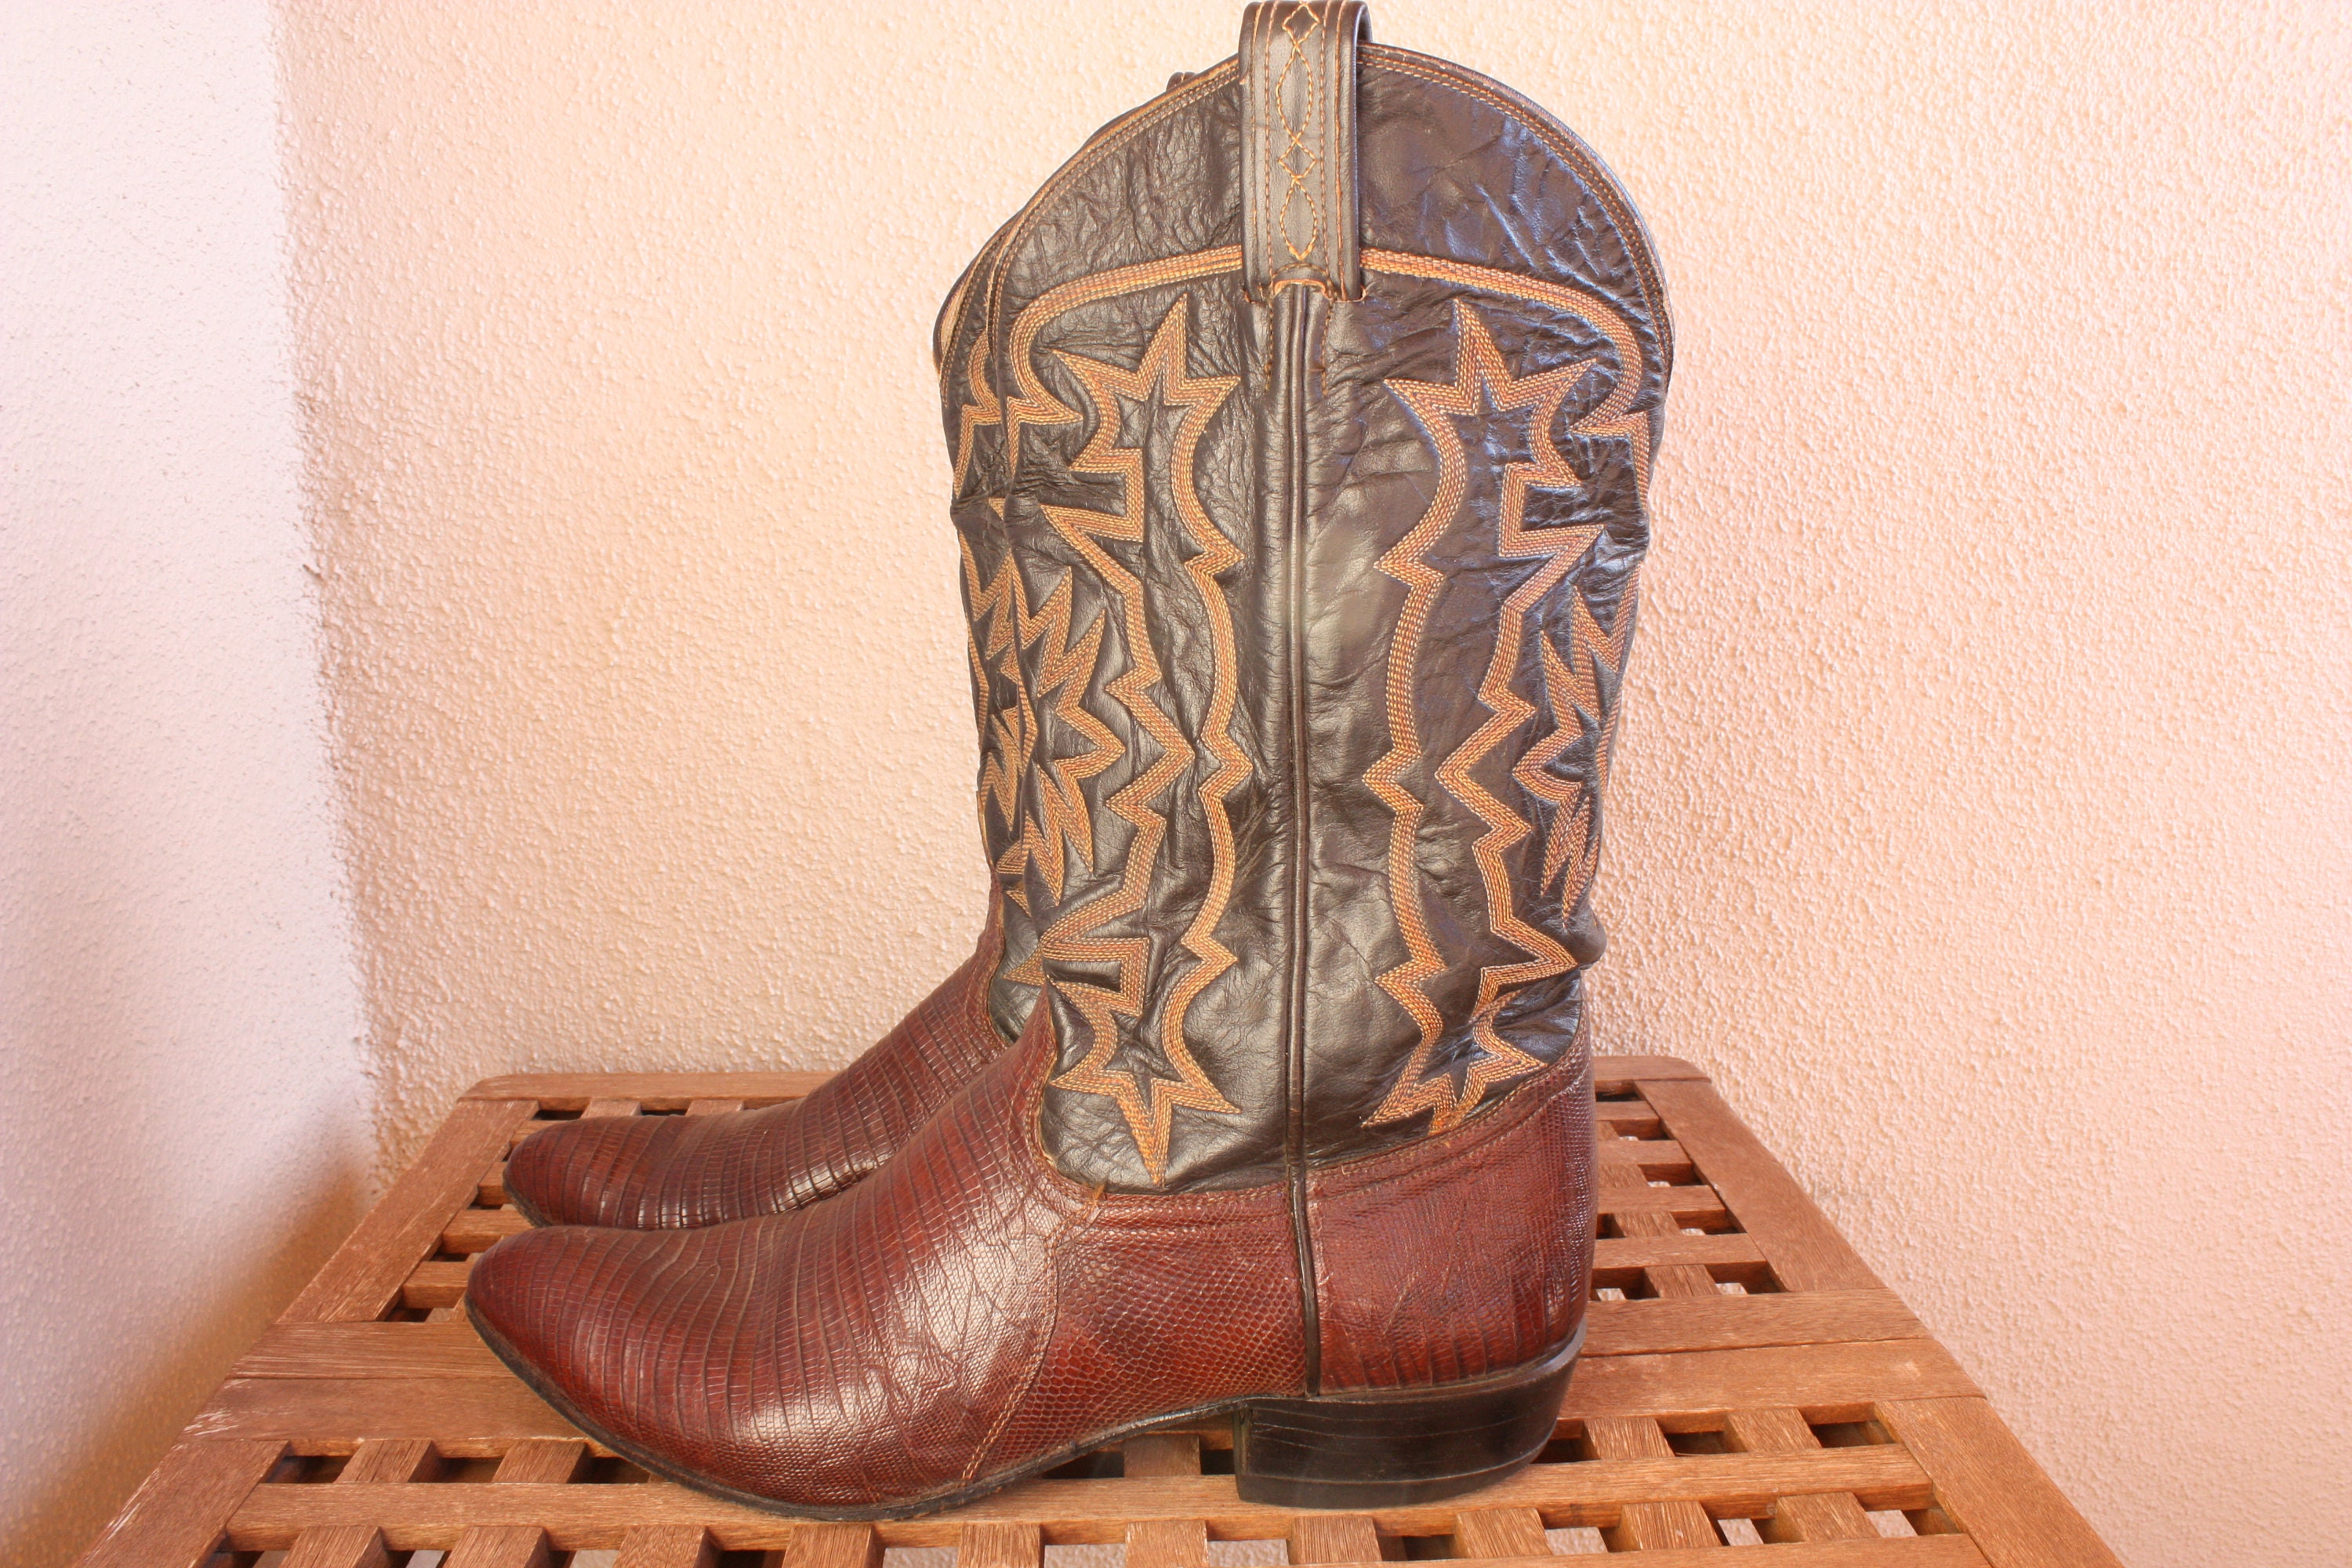 49f6dc153f5 Vintage Cowboy boots TONY LAMA Brown All Leather Snake Skin Cowboy Western  Boots Mens Retro Rockabilly Size 10.5